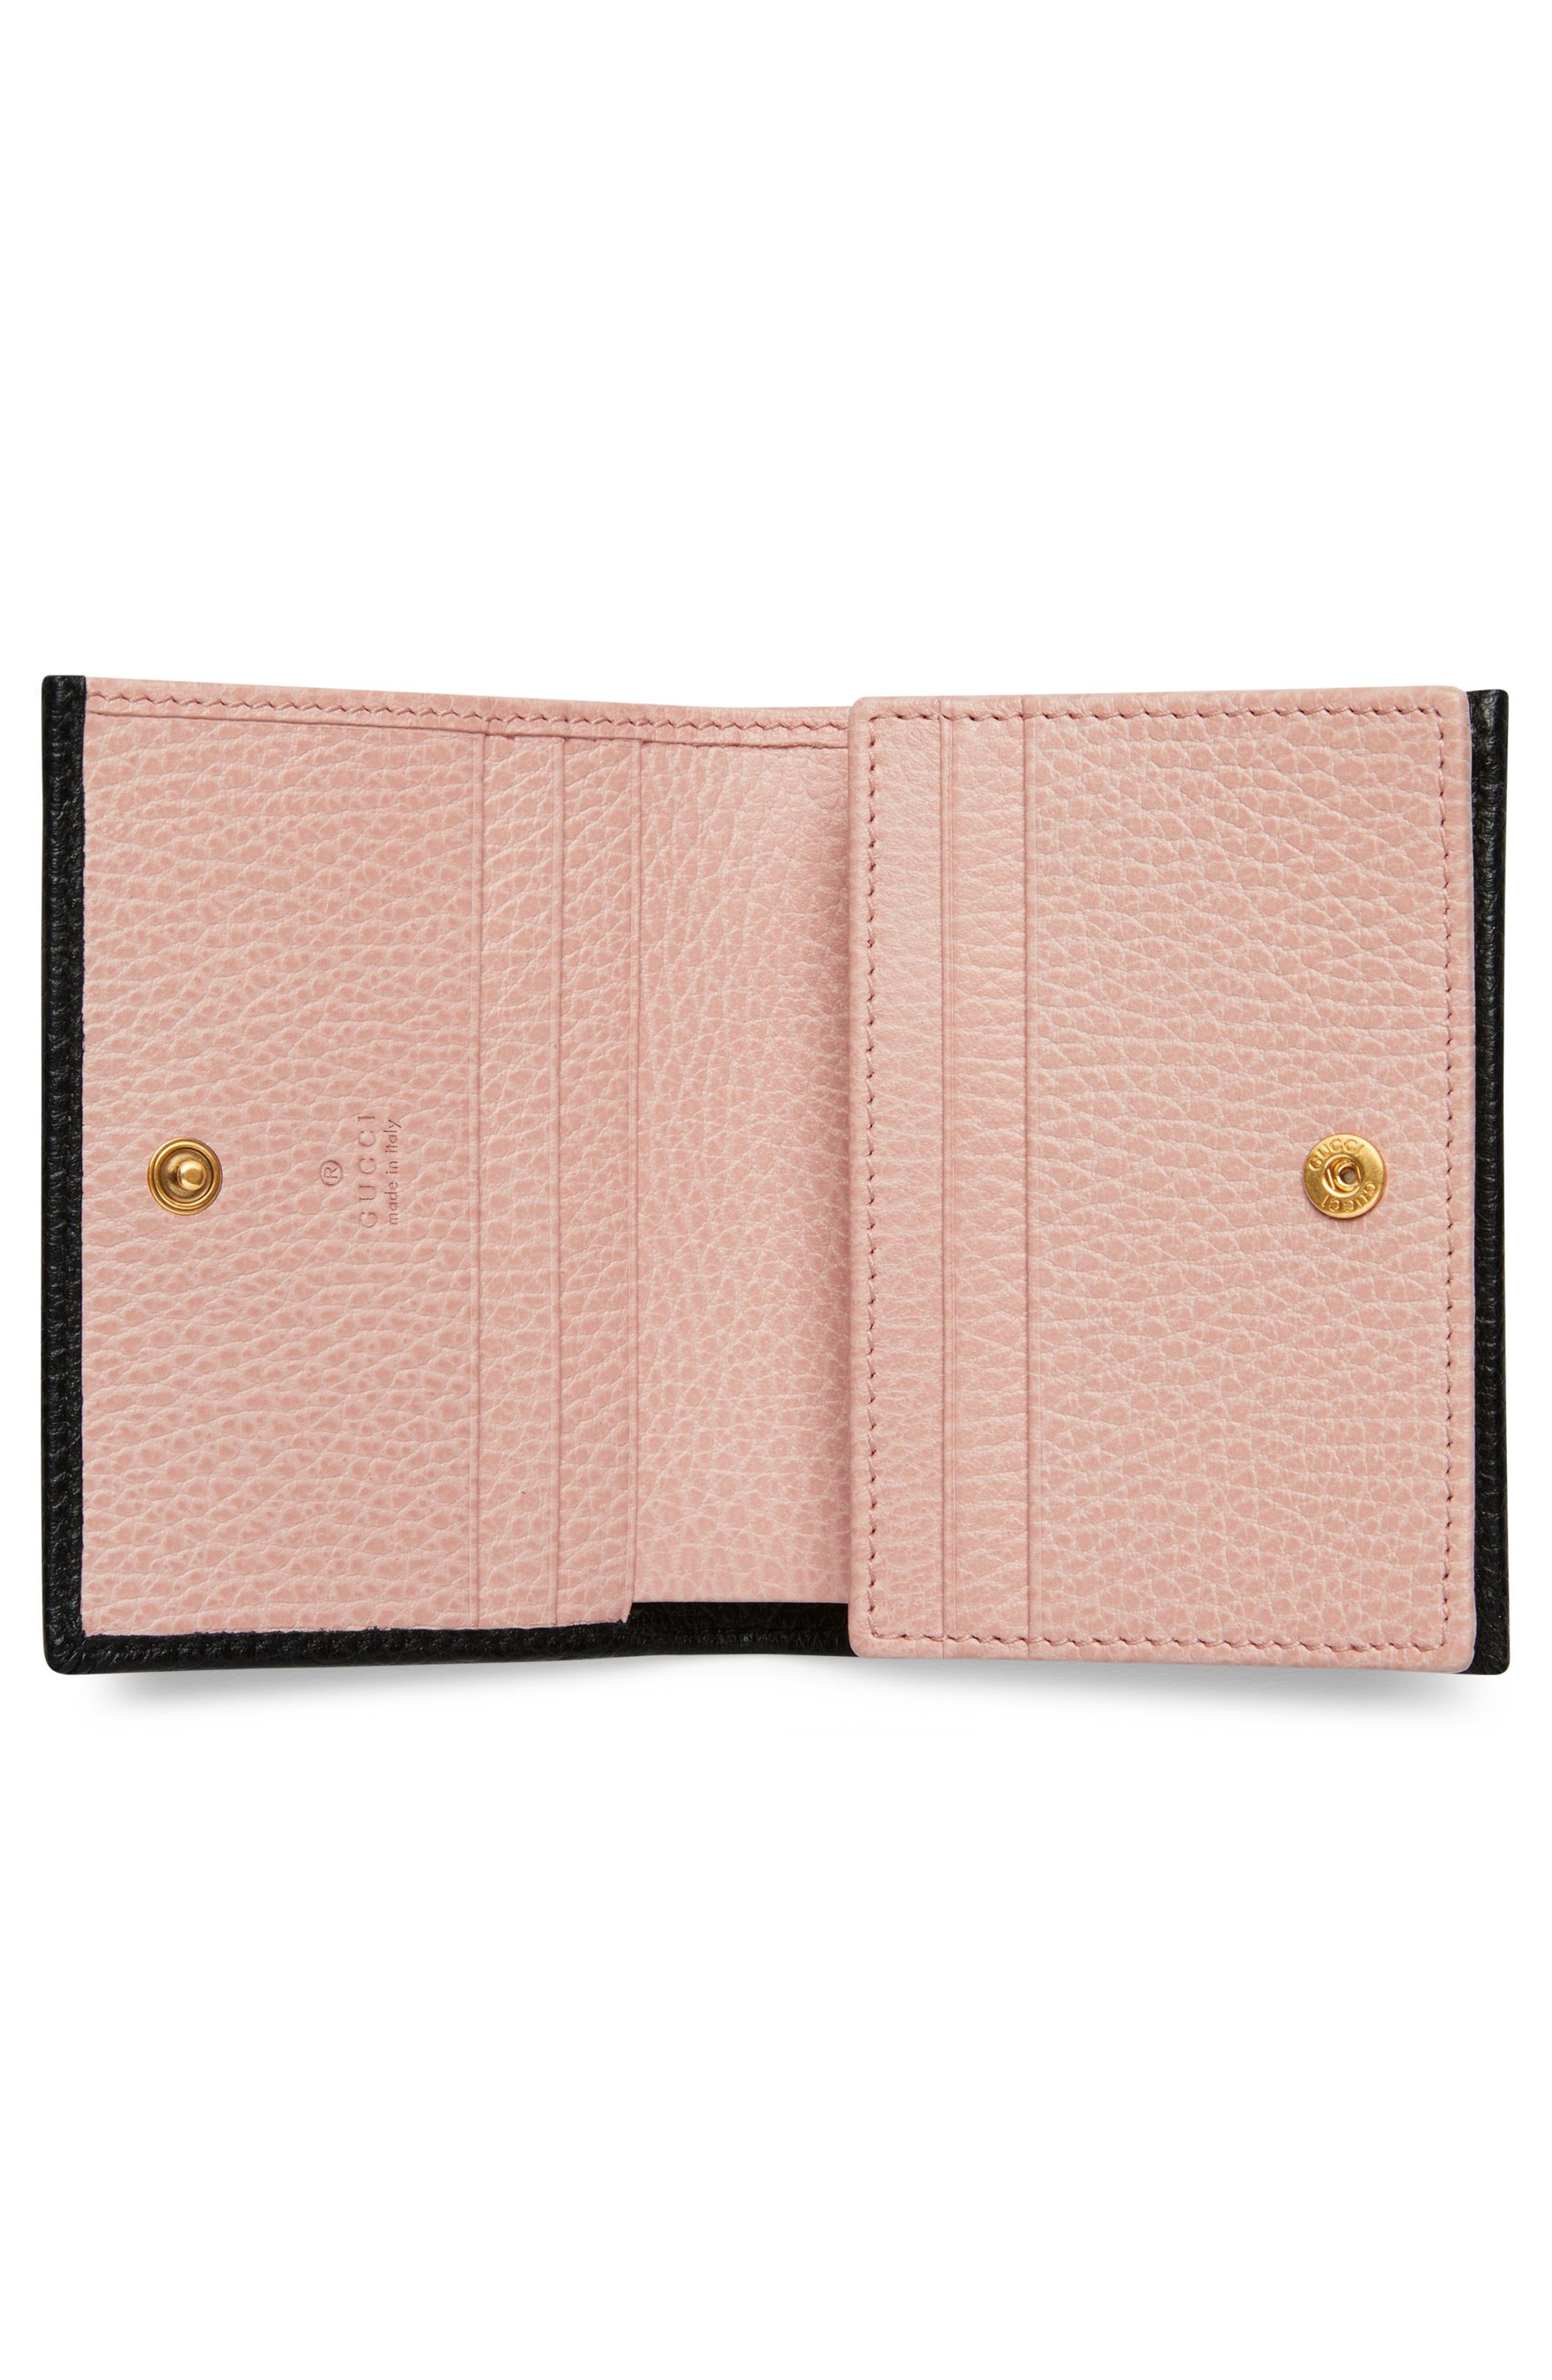 Fiocchino Leather Card Case,                             Alternate thumbnail 2, color,                             NERO/ PERFECT PINK/ CRYSTAL